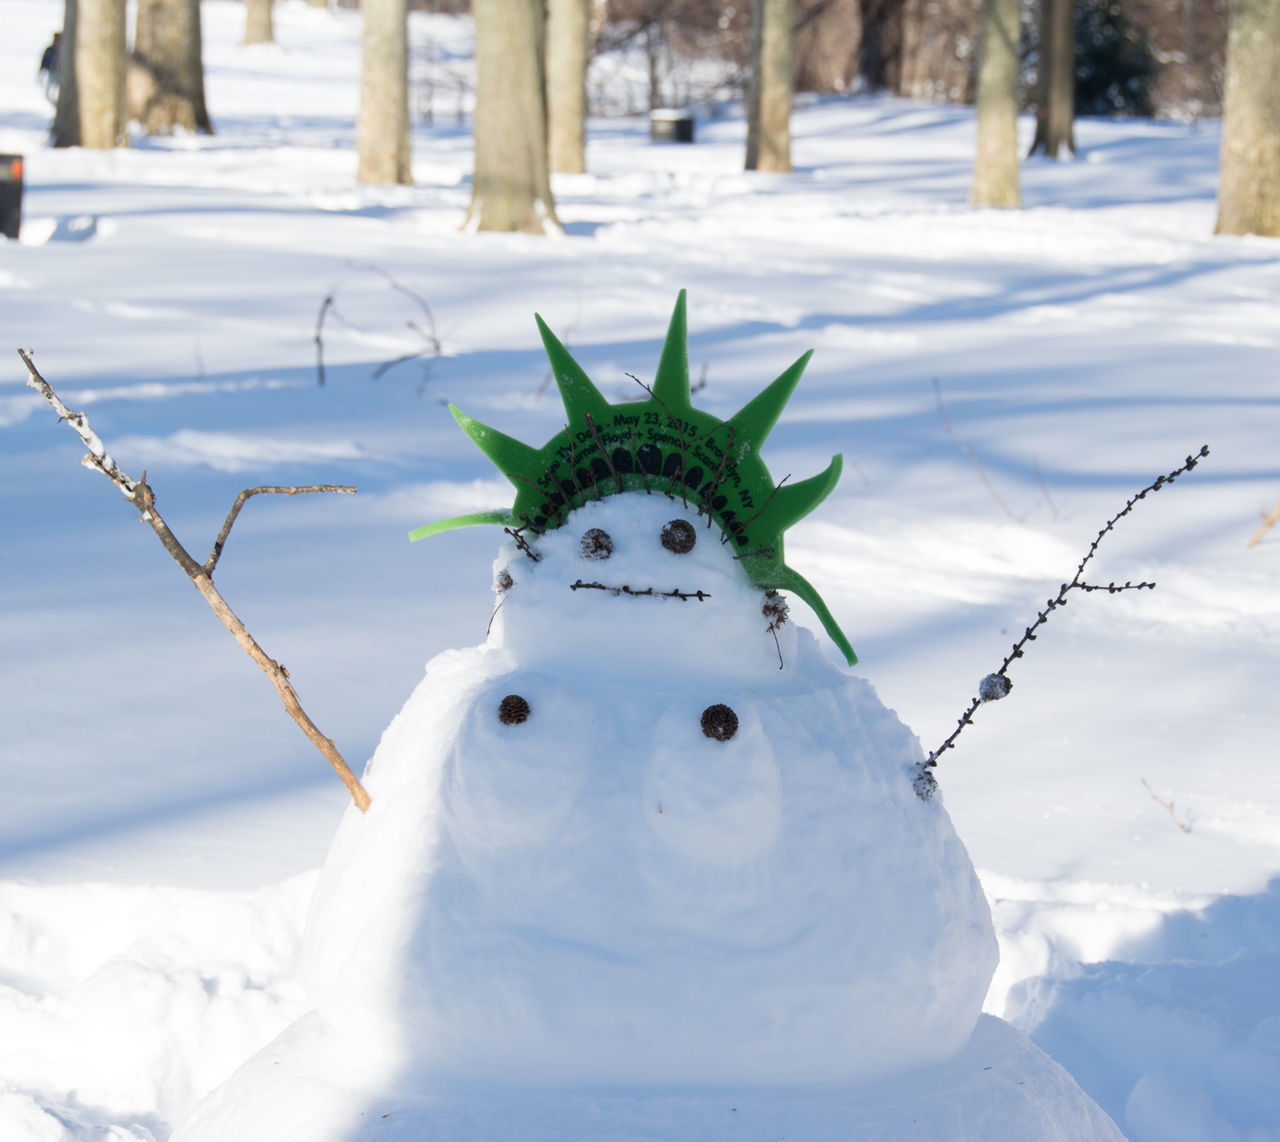 Fun Humor Humorous Lady Liberty Snowman Prospect Park Snow Snow ❄ Snowman Statue Of Liberty Winter